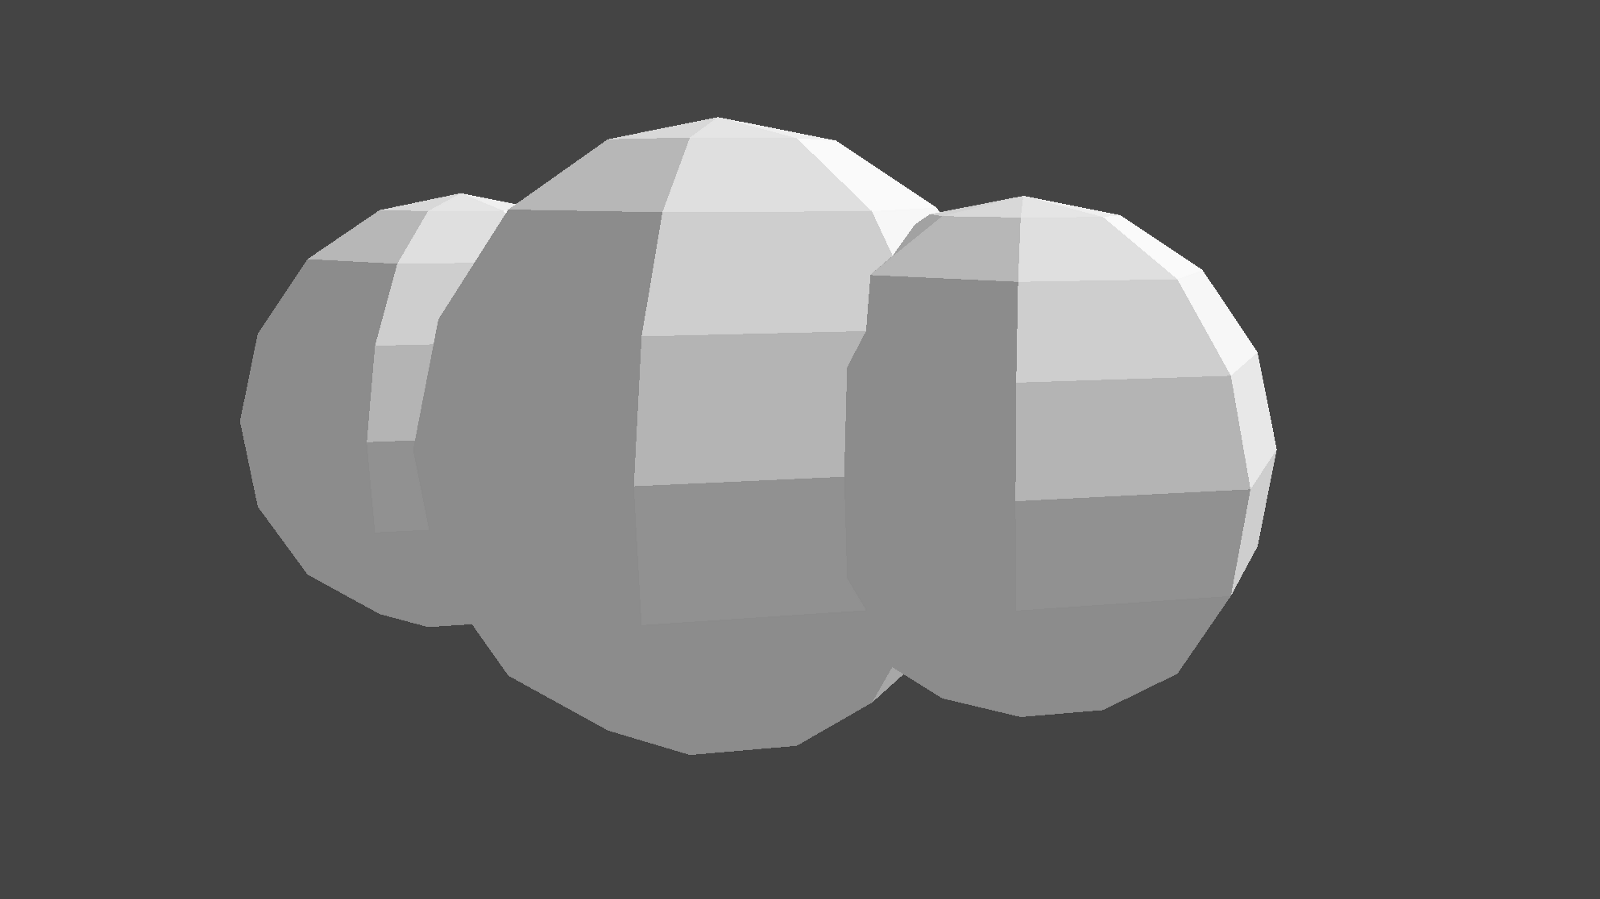 Low Poly Cloud from Spheres